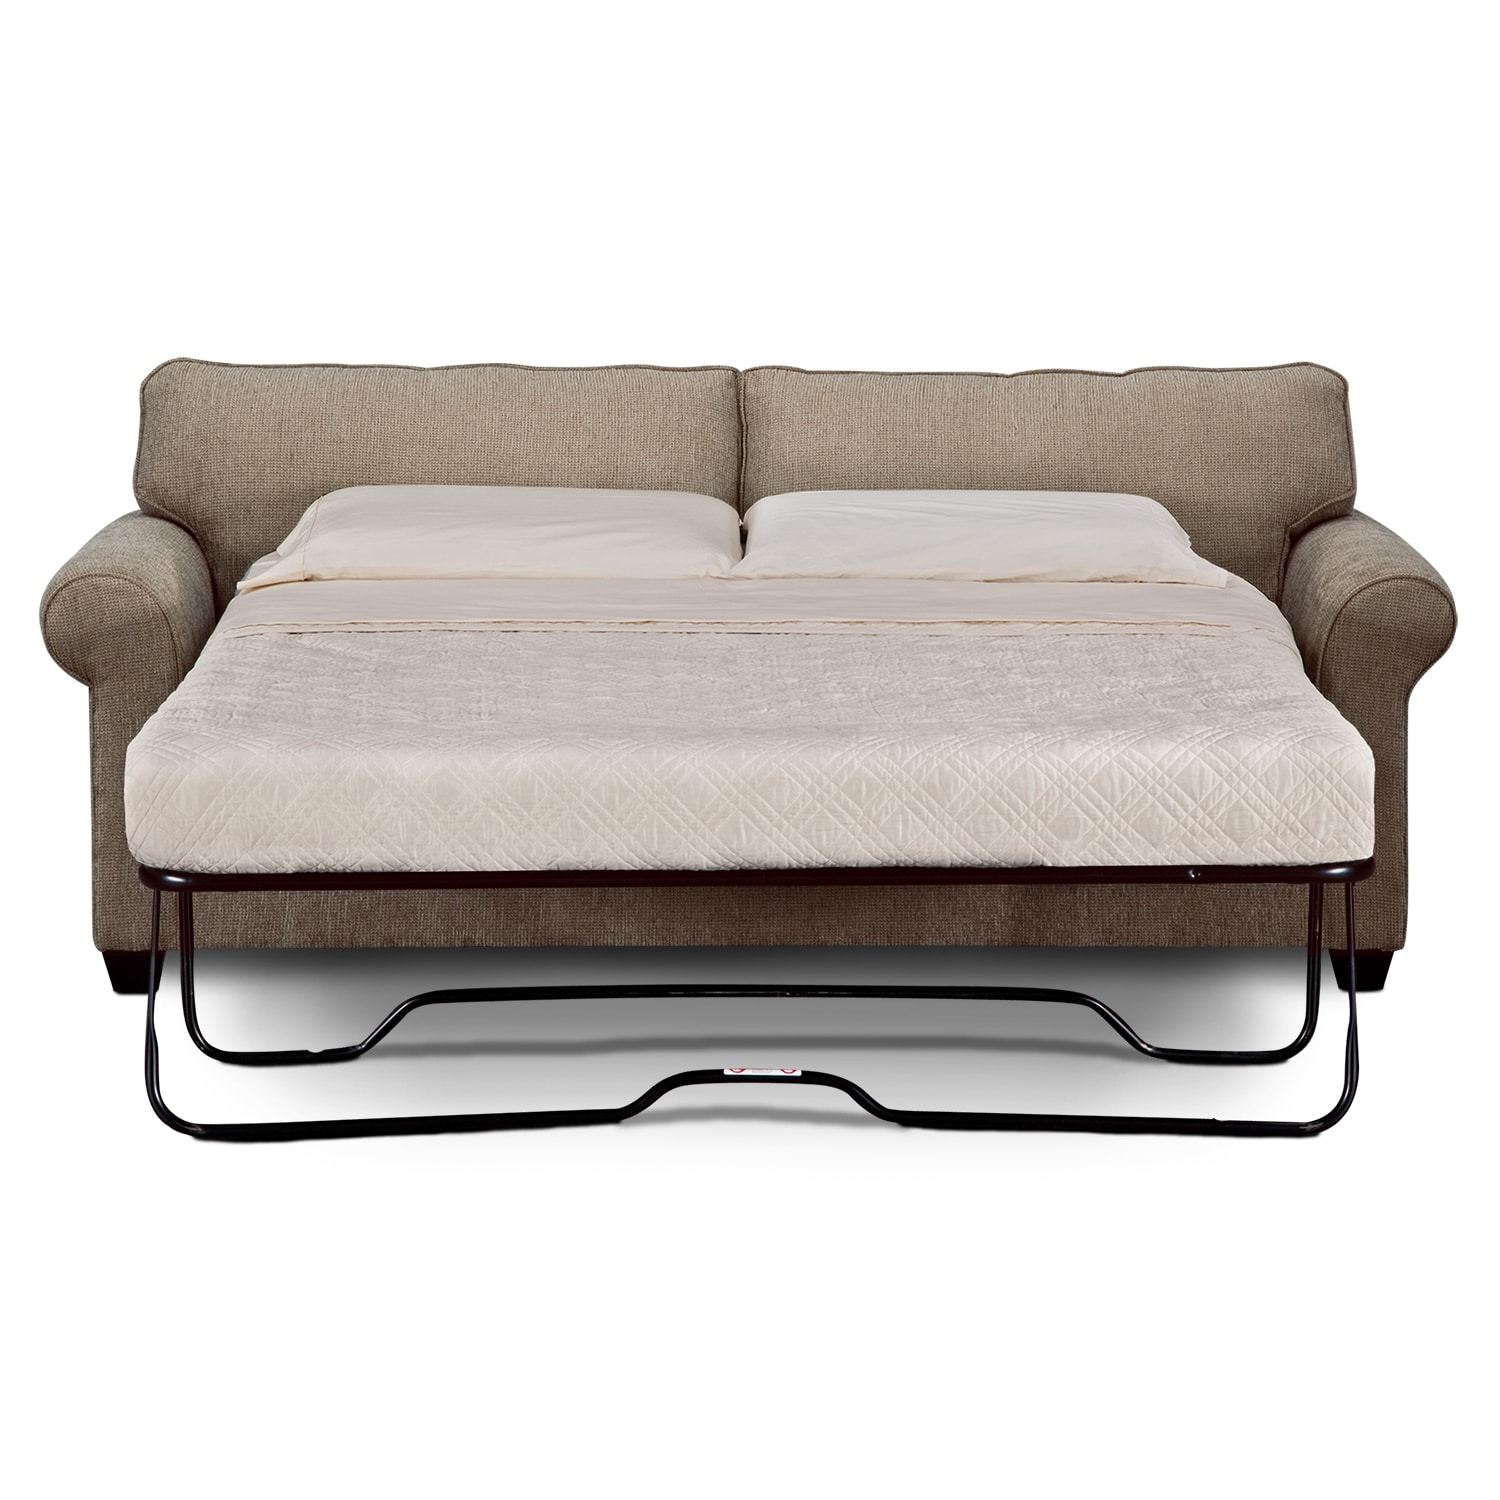 Fletcher queen sleeper sofa value city furniture for Furniture furniture